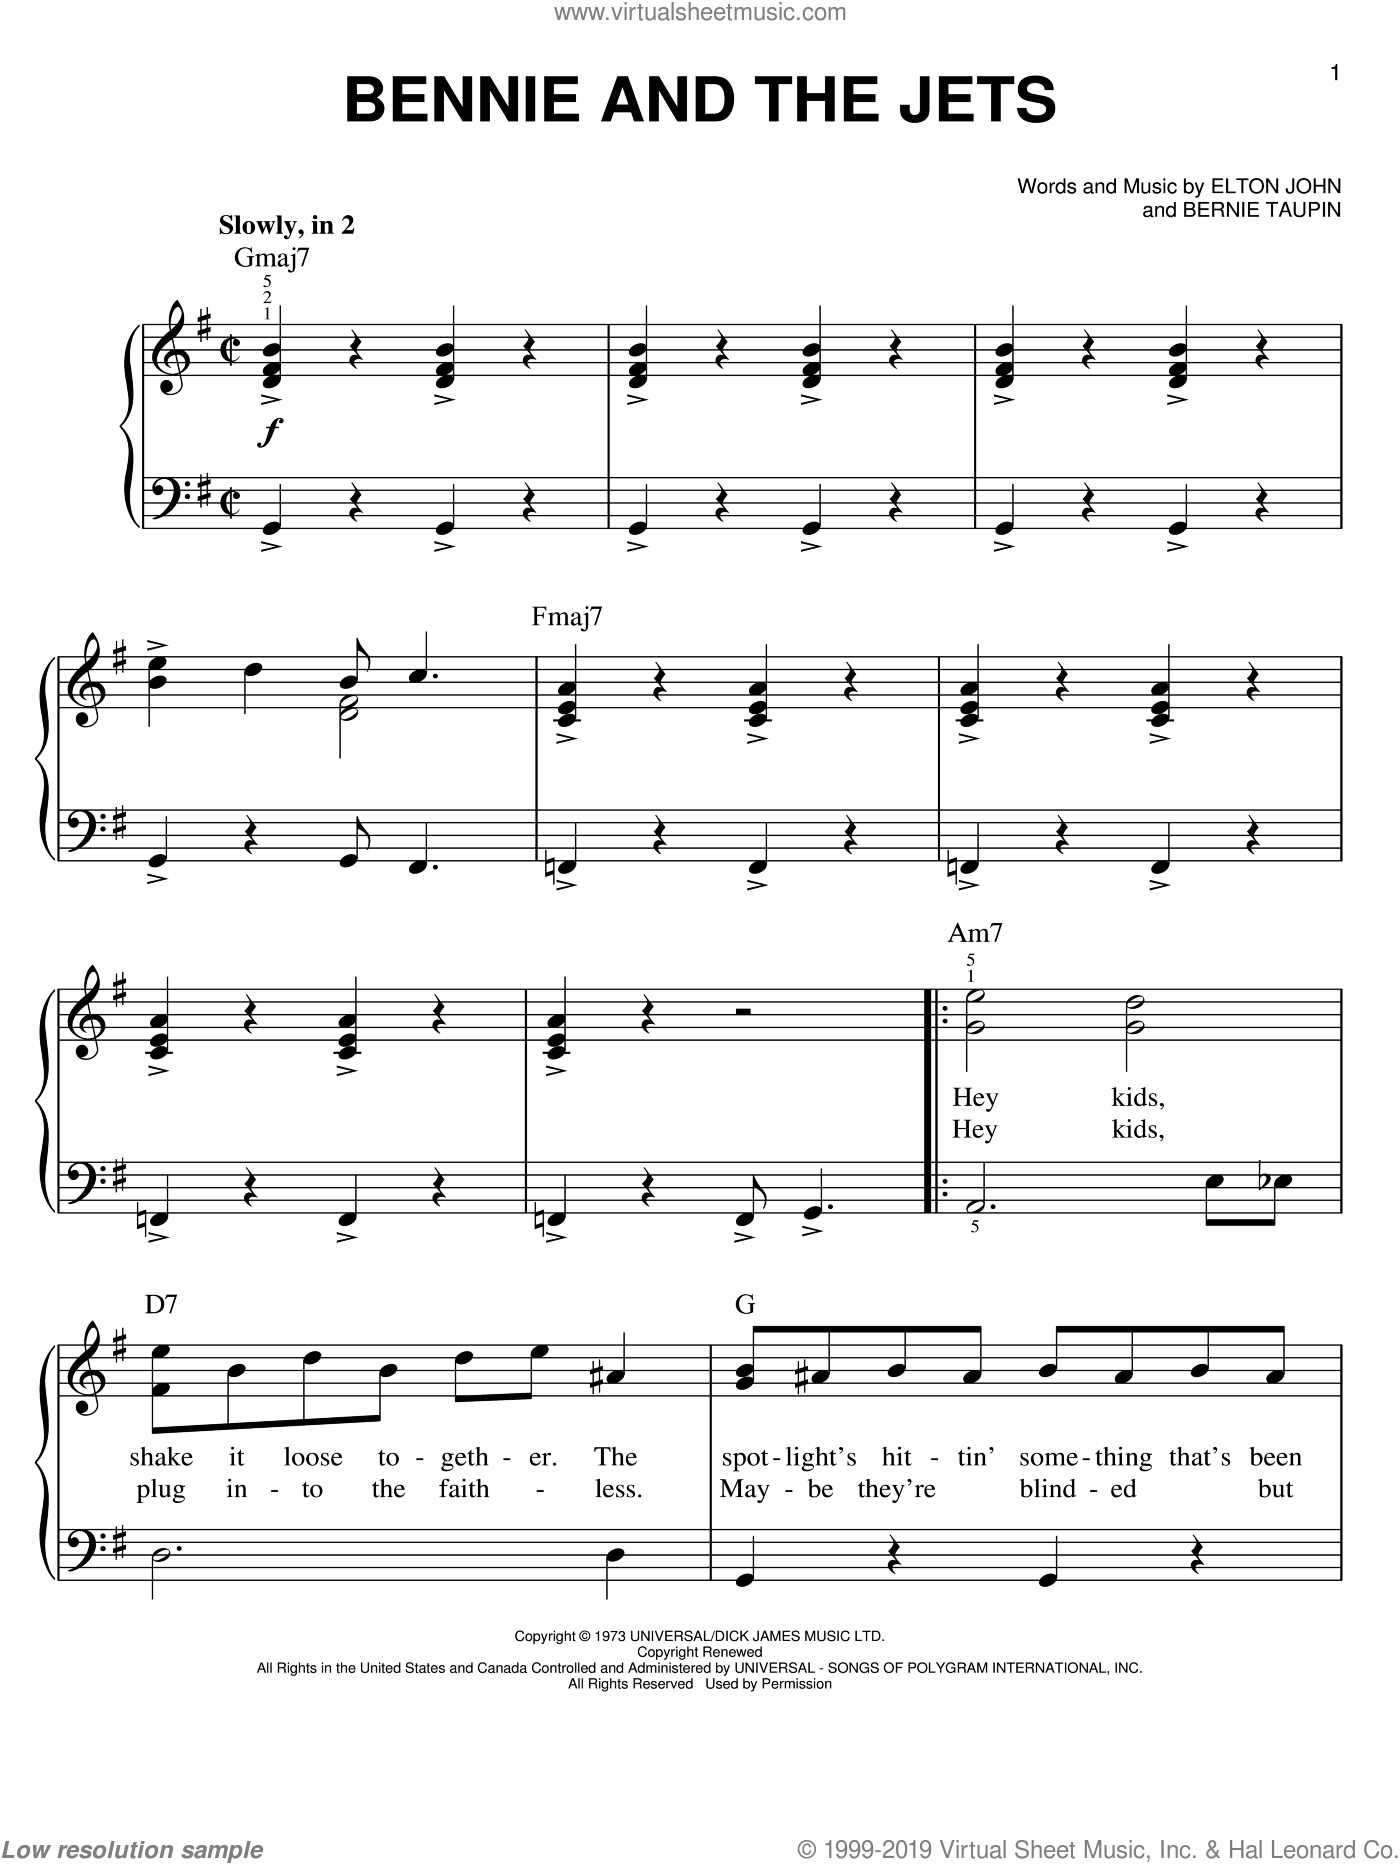 Bennie And The Jets, (easy) sheet music for piano solo by Elton John and Bernie Taupin, easy skill level